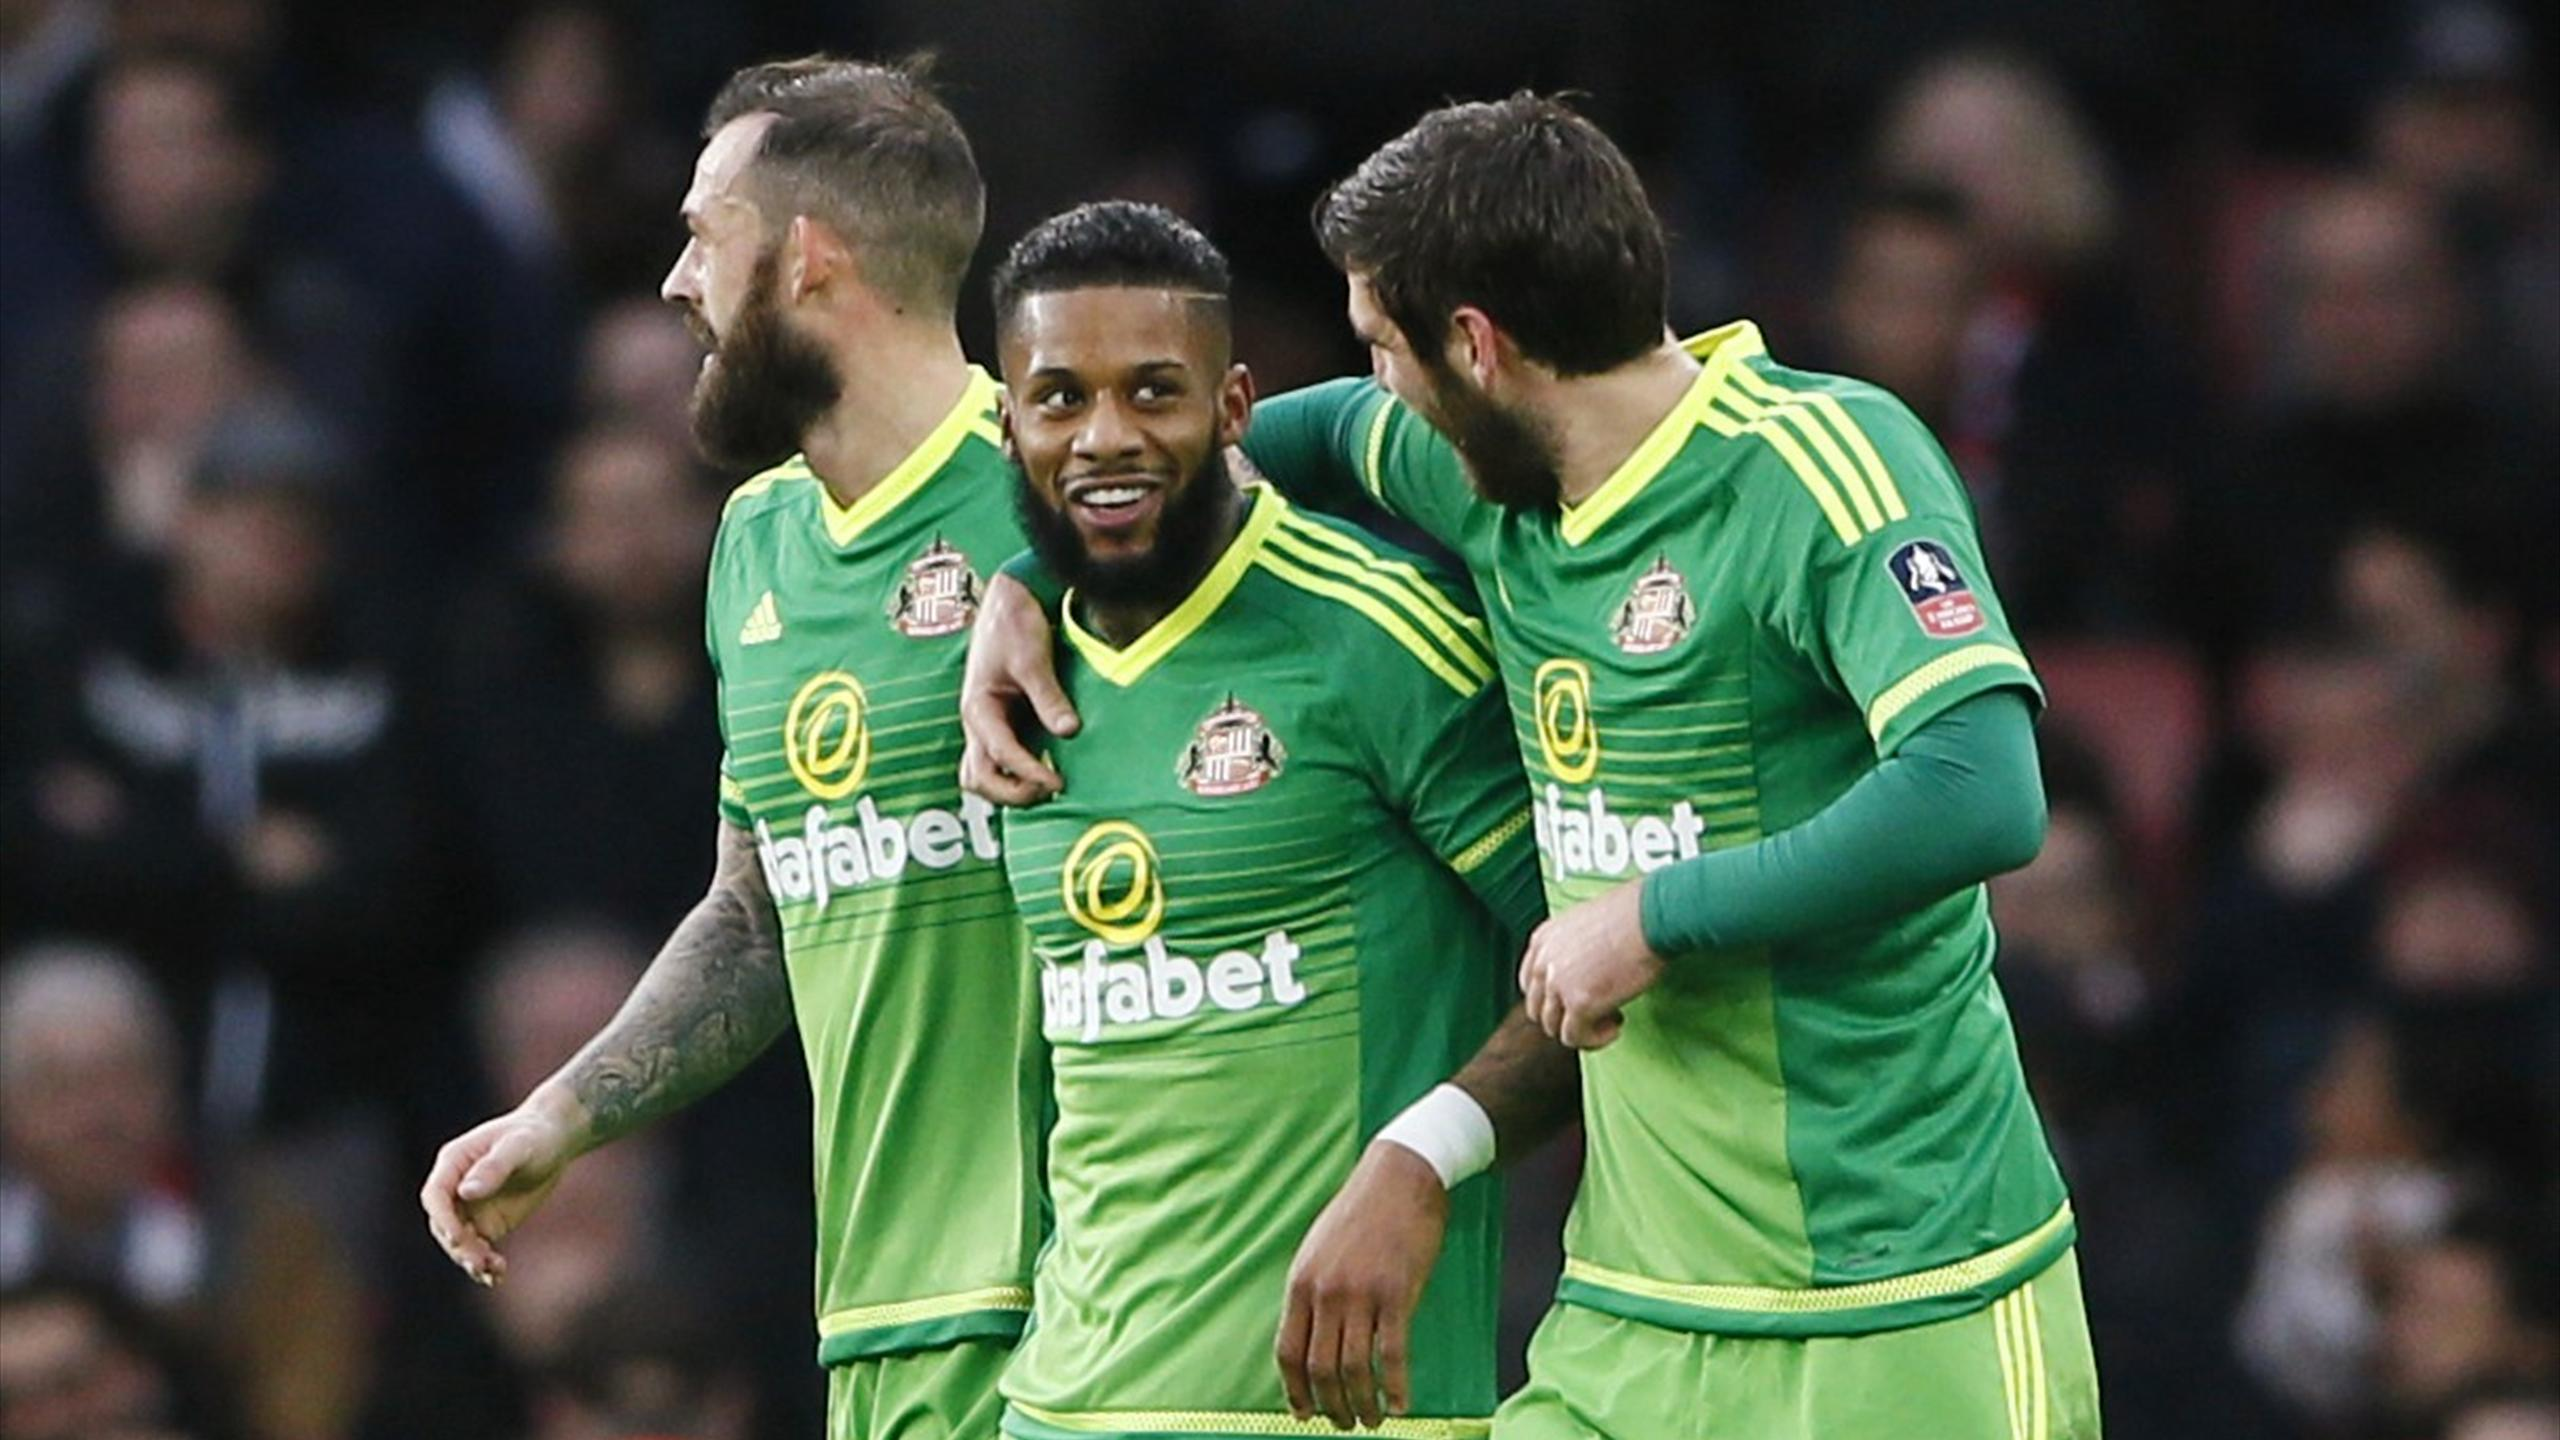 Jeremain Lens celebrates with Danny Graham and Steven Fletcher after scoring the first goal for Sunderland against Arsenal